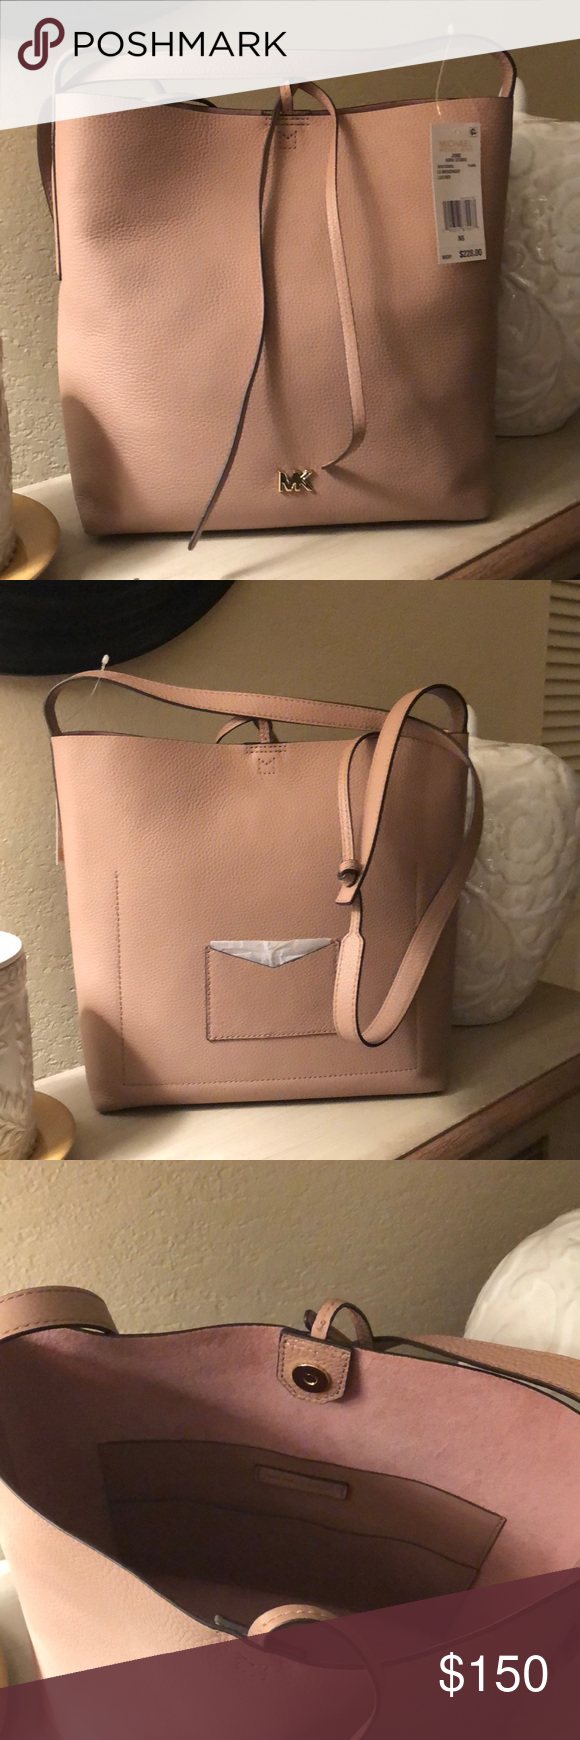 Michael Kors Large Messenger Michael Kors large messenger leather purse,  Junie style, fawn blush colored. Brand new with tags. Paid  160, lost  receipt and ... 67bdfa1b7e